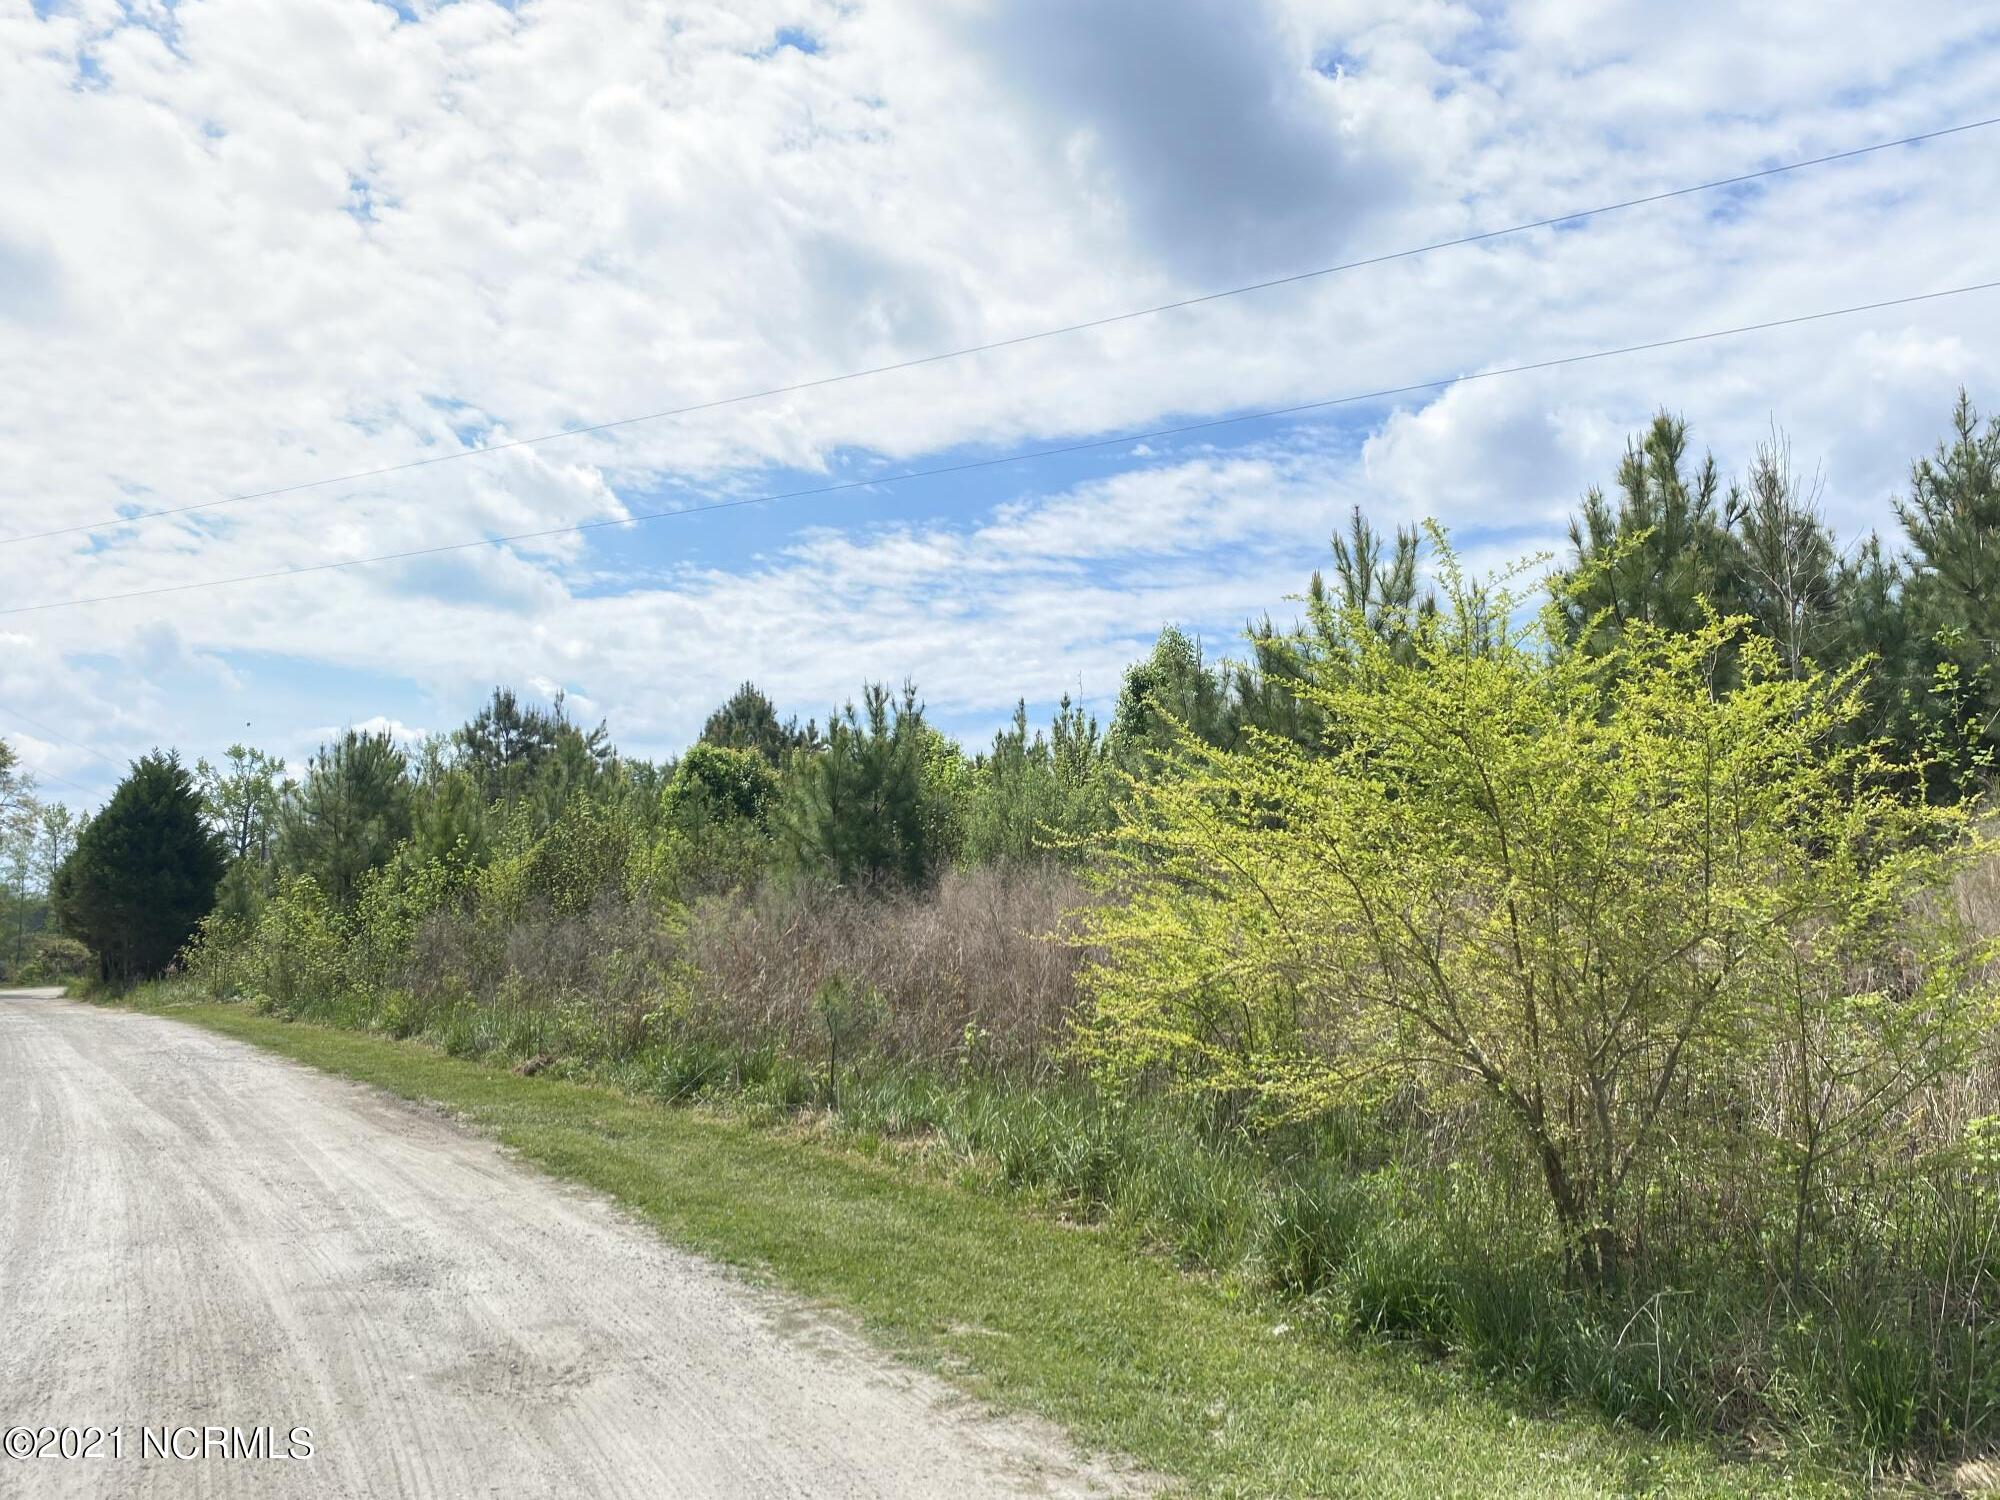 SEARCHING FOR A LARGE LOT TO BUILD?  Seven acres, in Onslow County, off of White Oak River Rd, with a Maysville address.  No restrictions; so chickens, horses and goats are a go! Build your dream home here. Some cedar trees have been planted along the road to provide even more privacy! Yes, a modular will be allowed.